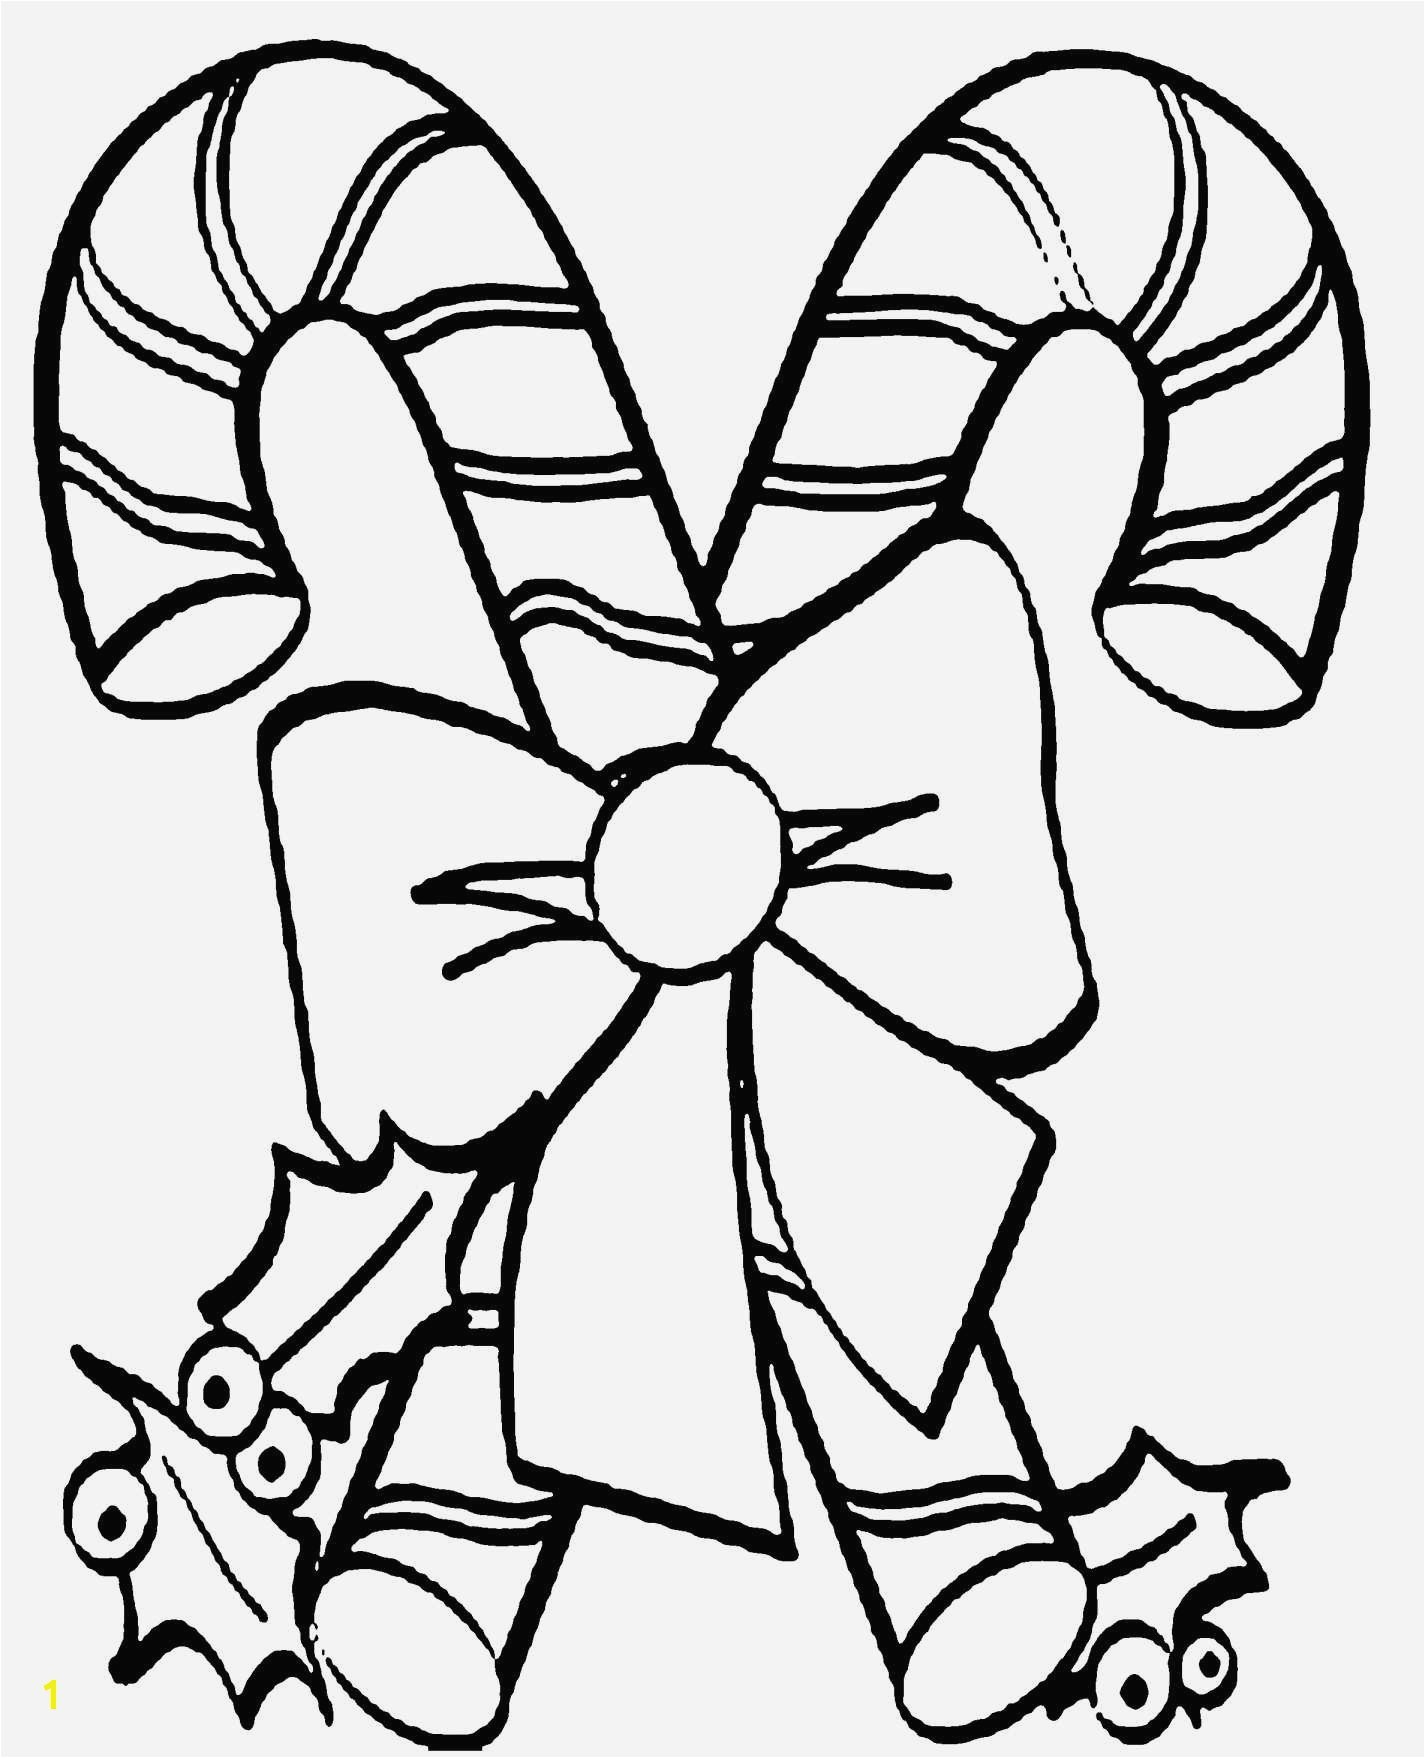 Printable Christmas Candy Cane Coloring Pages 12 Lovely Free Printable Candy Cane Coloring Pages